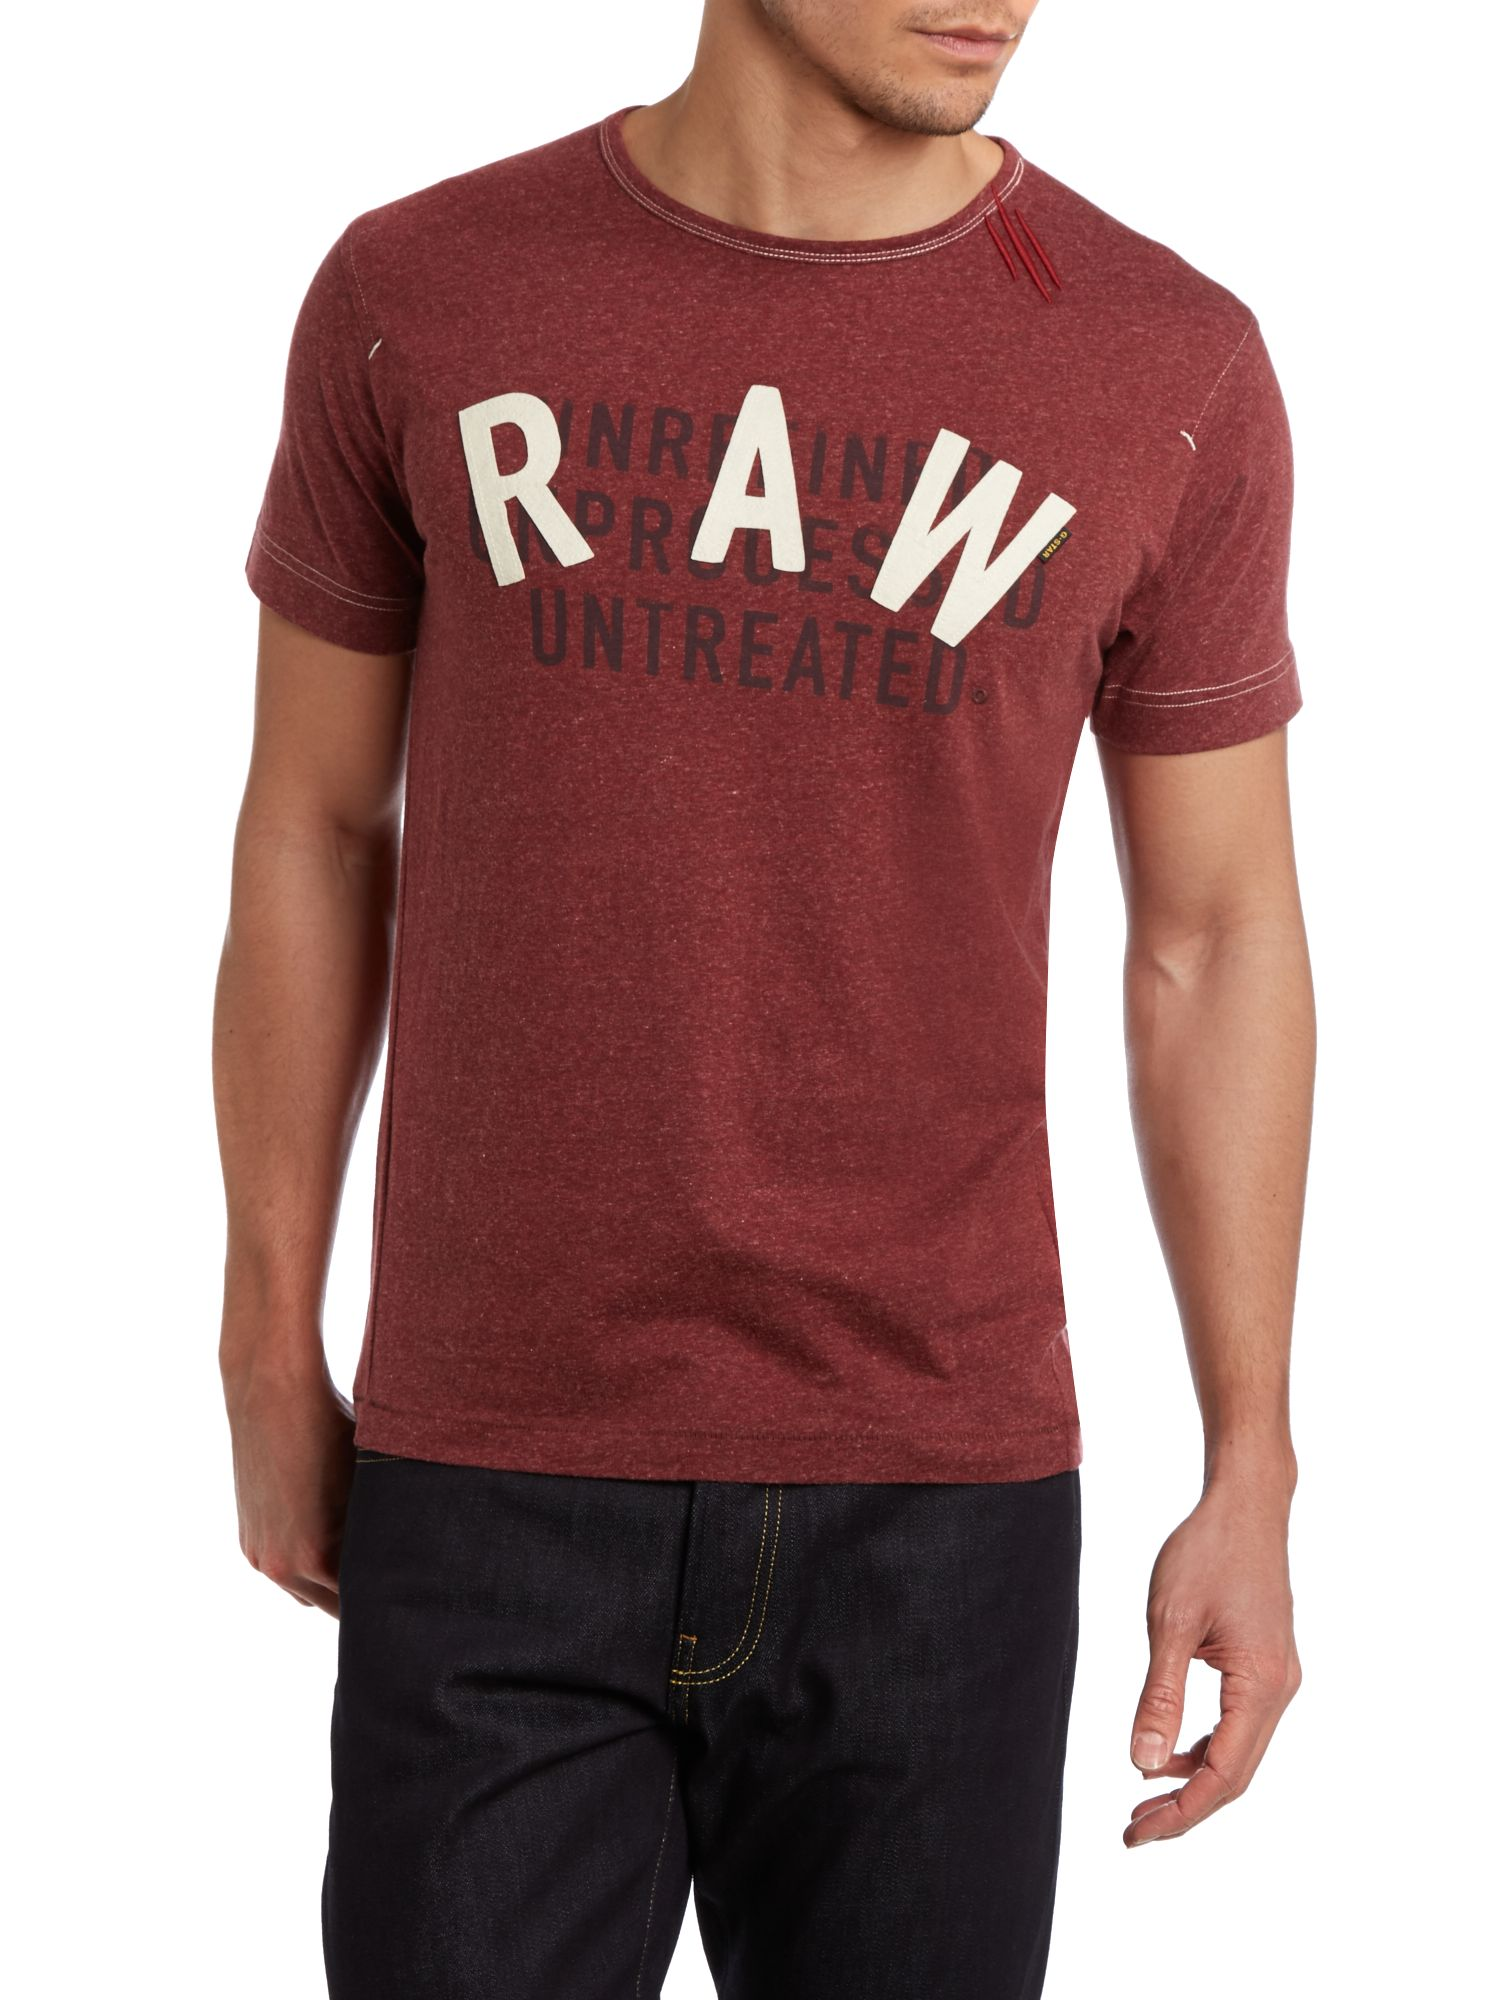 Raw large logo print dark red t-shirt